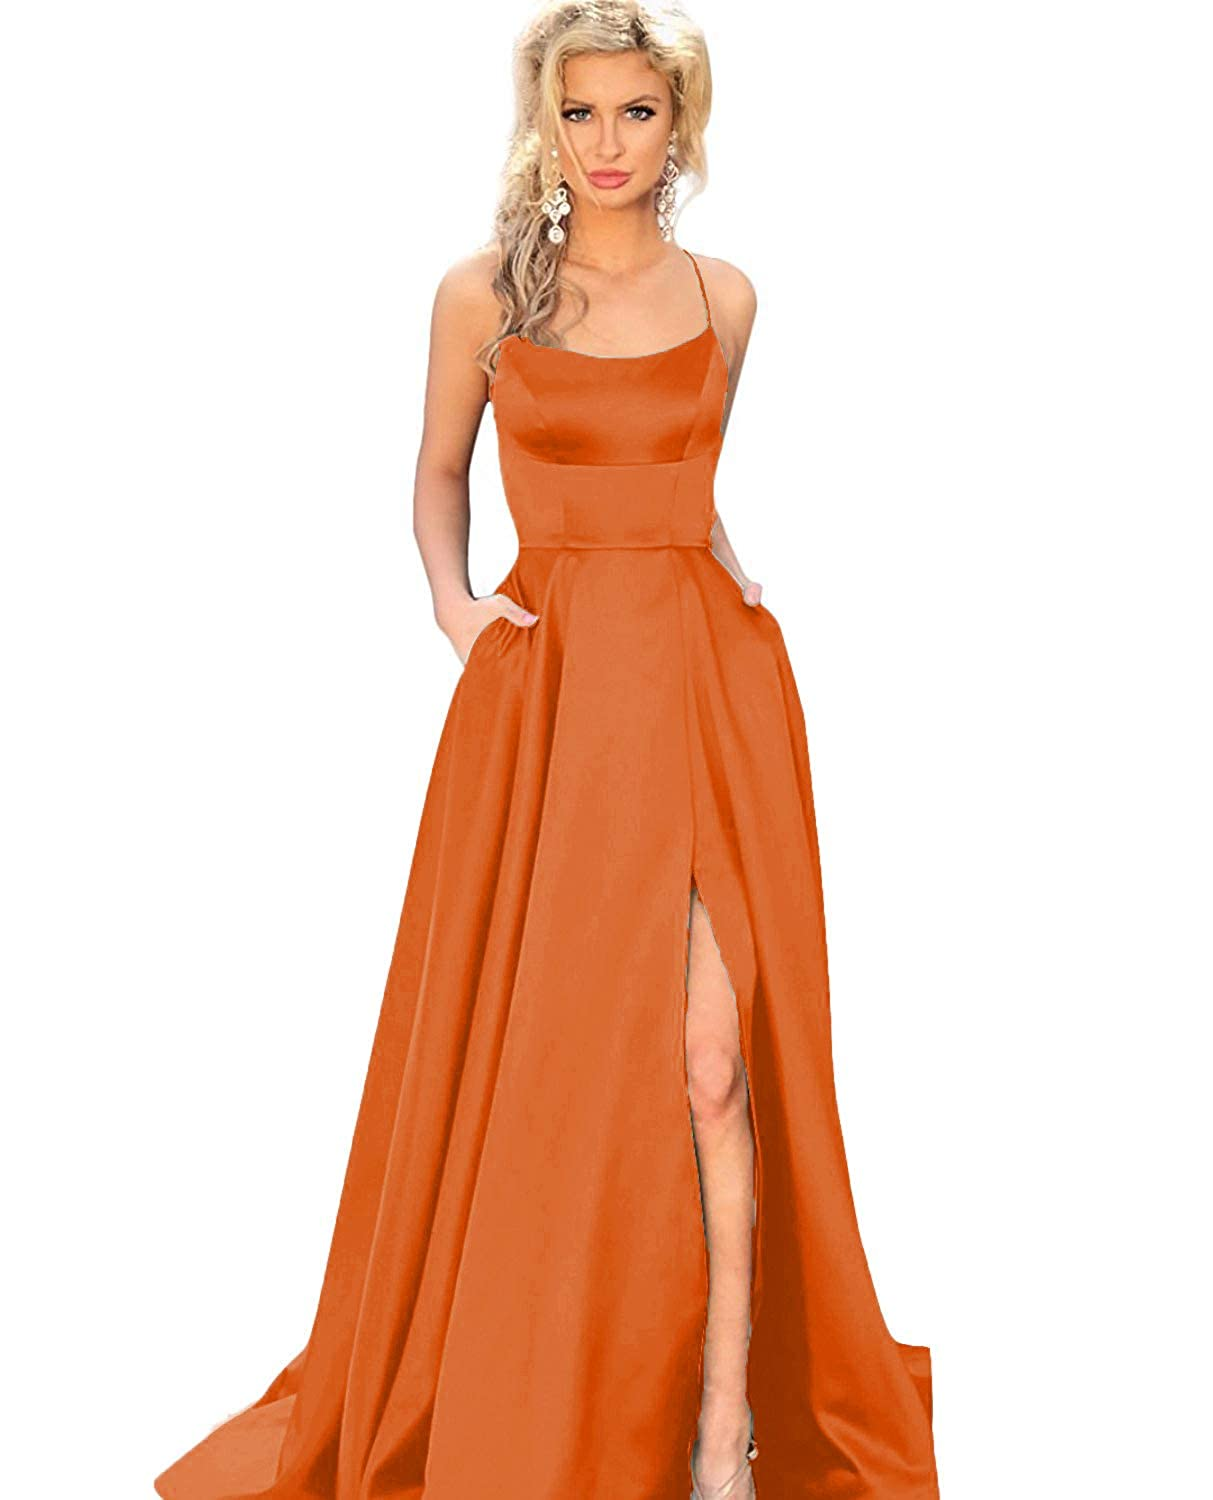 orange YMSHA Womens Long Halter Split Prom Party Dresses with Pockets Spaghetti Straps Evening Formal Gown PM10